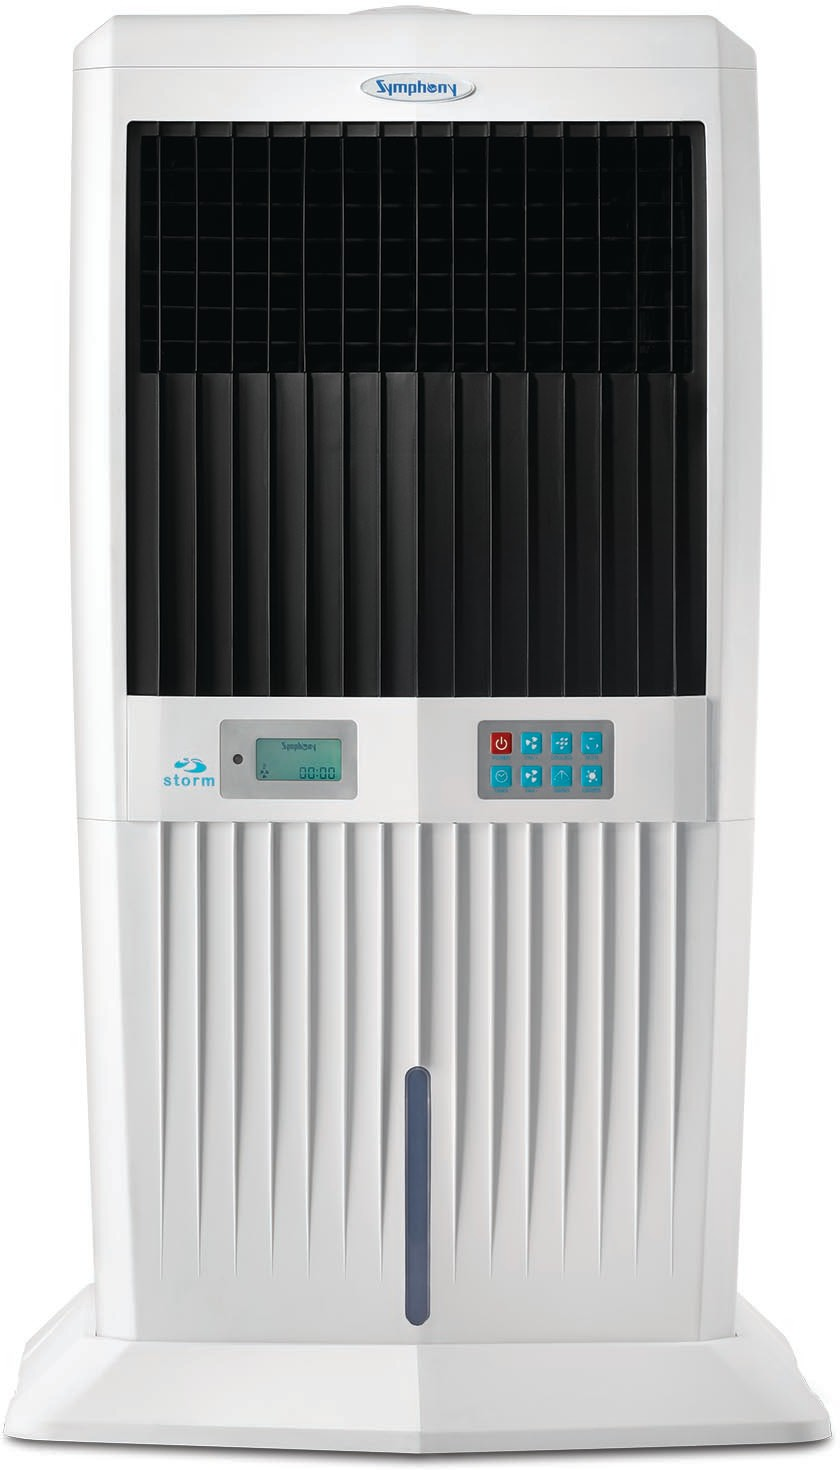 Symphony Storm 70i Room Air Cooler Image